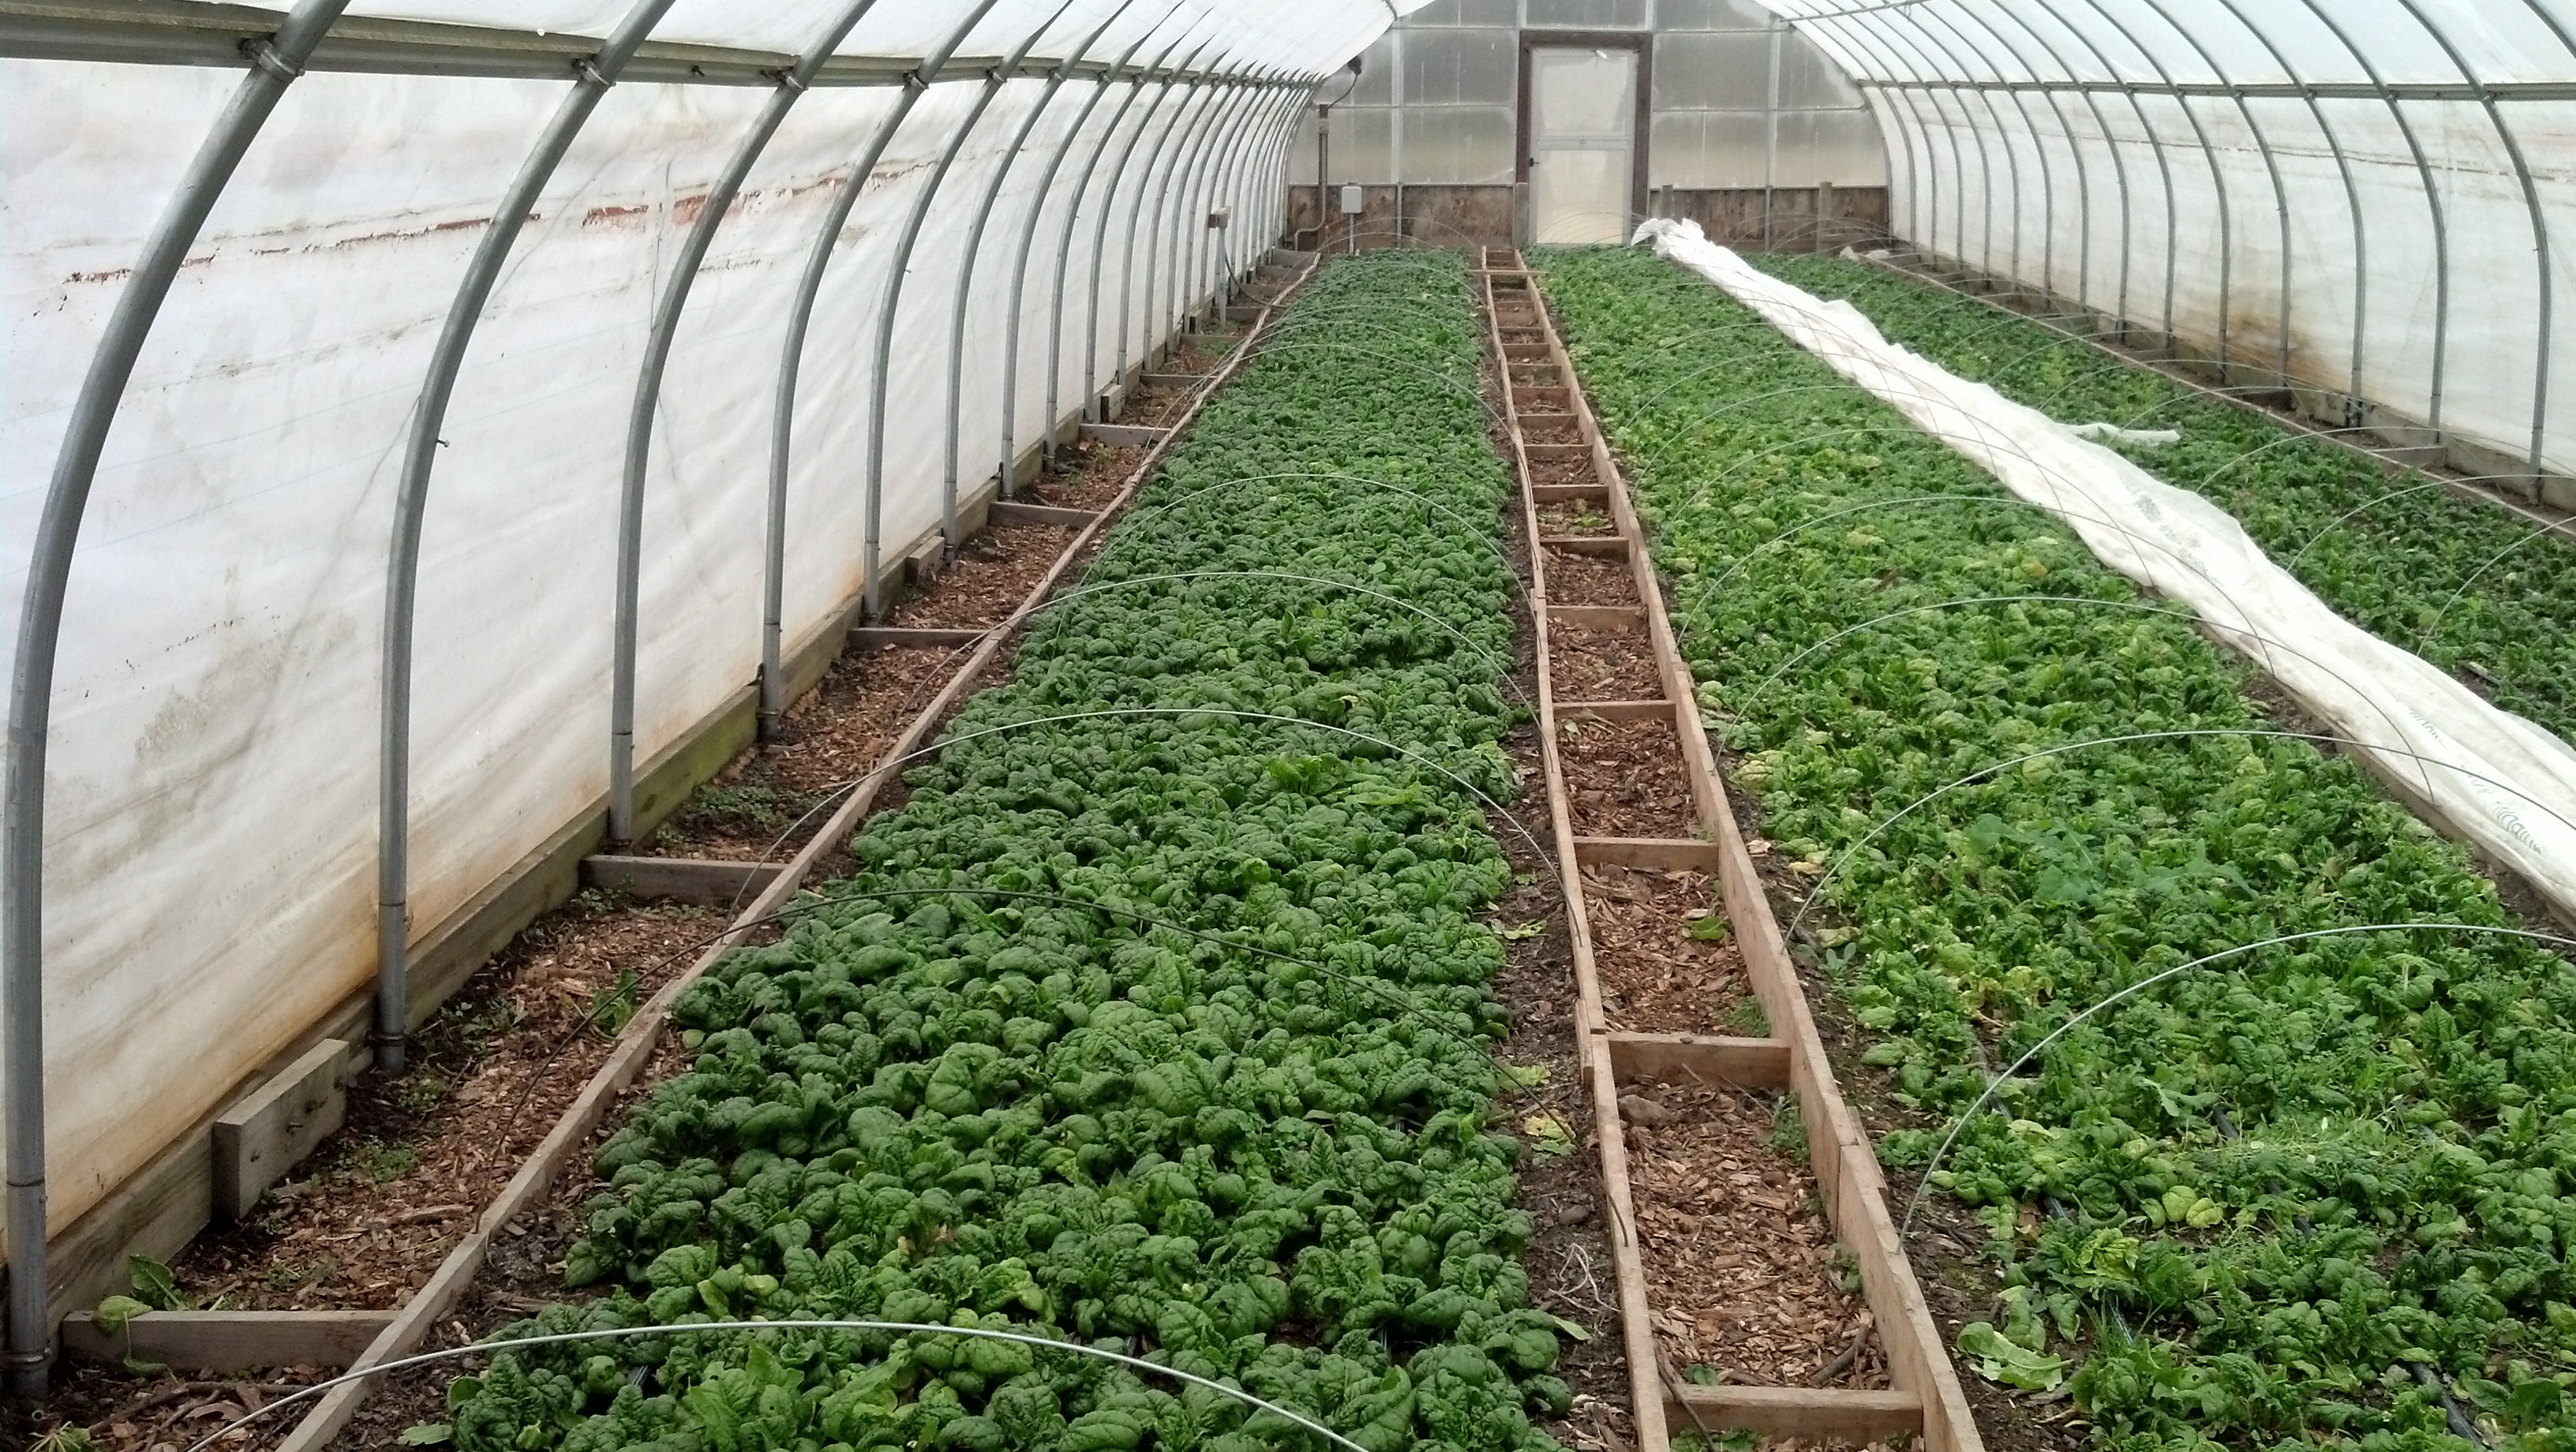 Greenhouse Spinach Grown Without Fertilizer